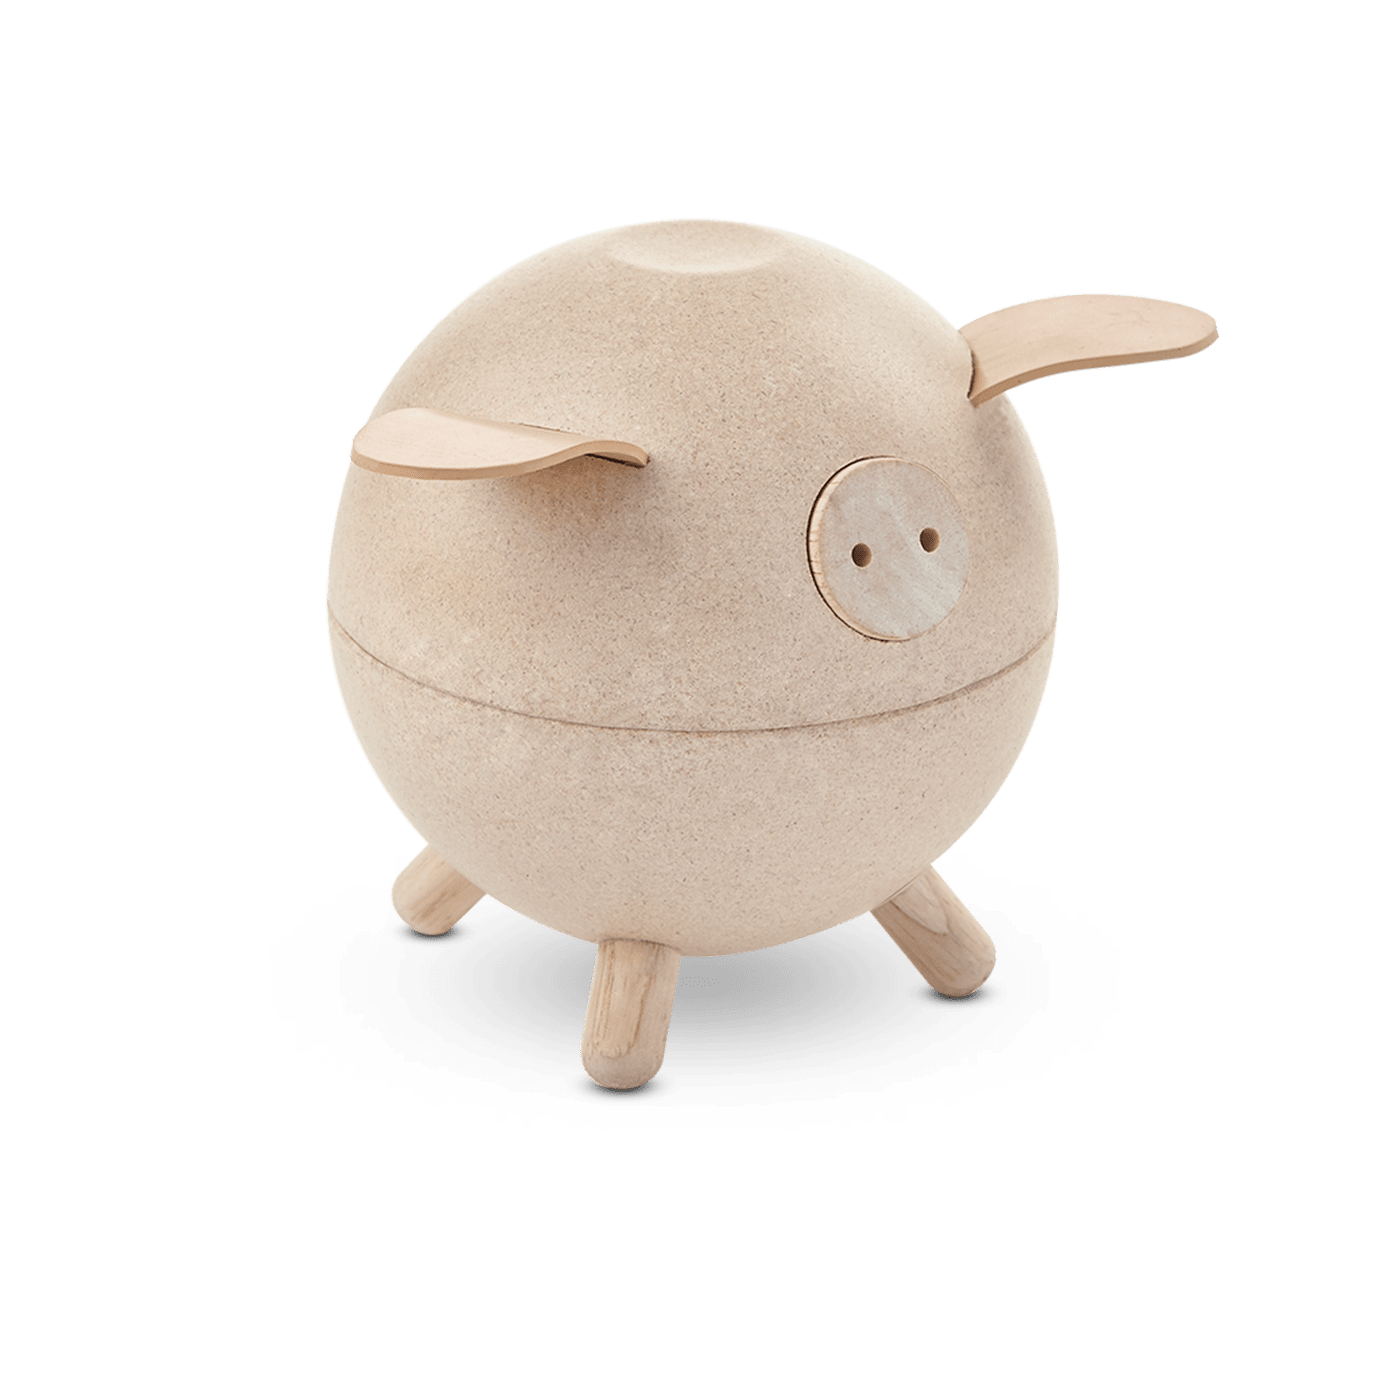 8611_PlanToys_PIGGY_BANK_WHITE_PlanHome™_Mathematical_Fine_Motor_Coordination_Social_3yrs_Wooden_toys_Education_toys_Safety_Toys_Non-toxic_0.png